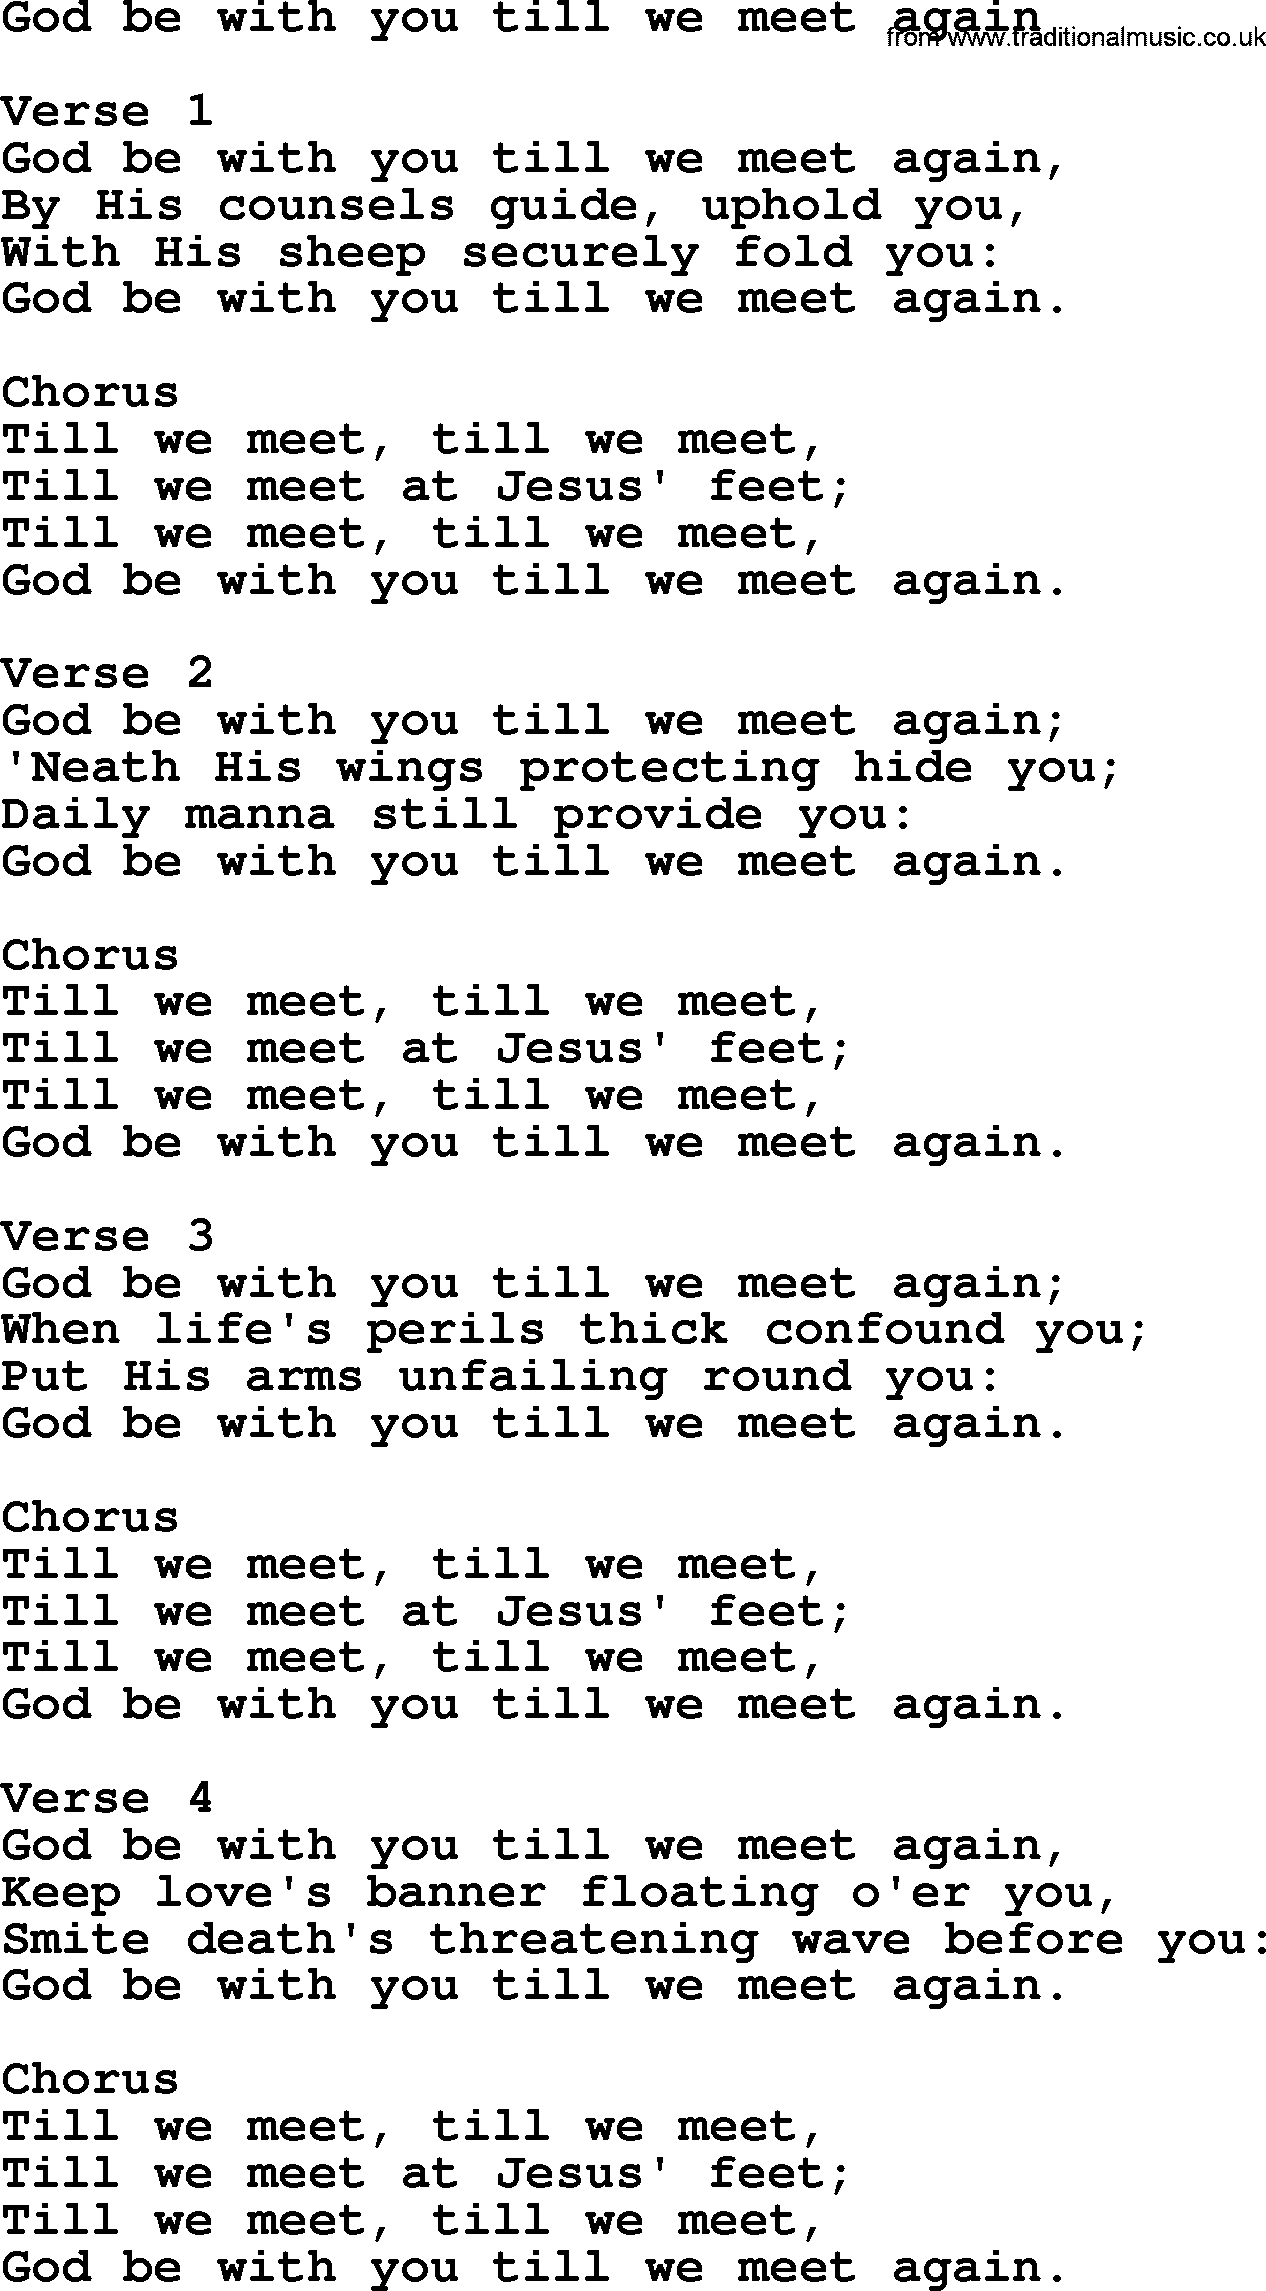 God be with you till we meet again chords pdf